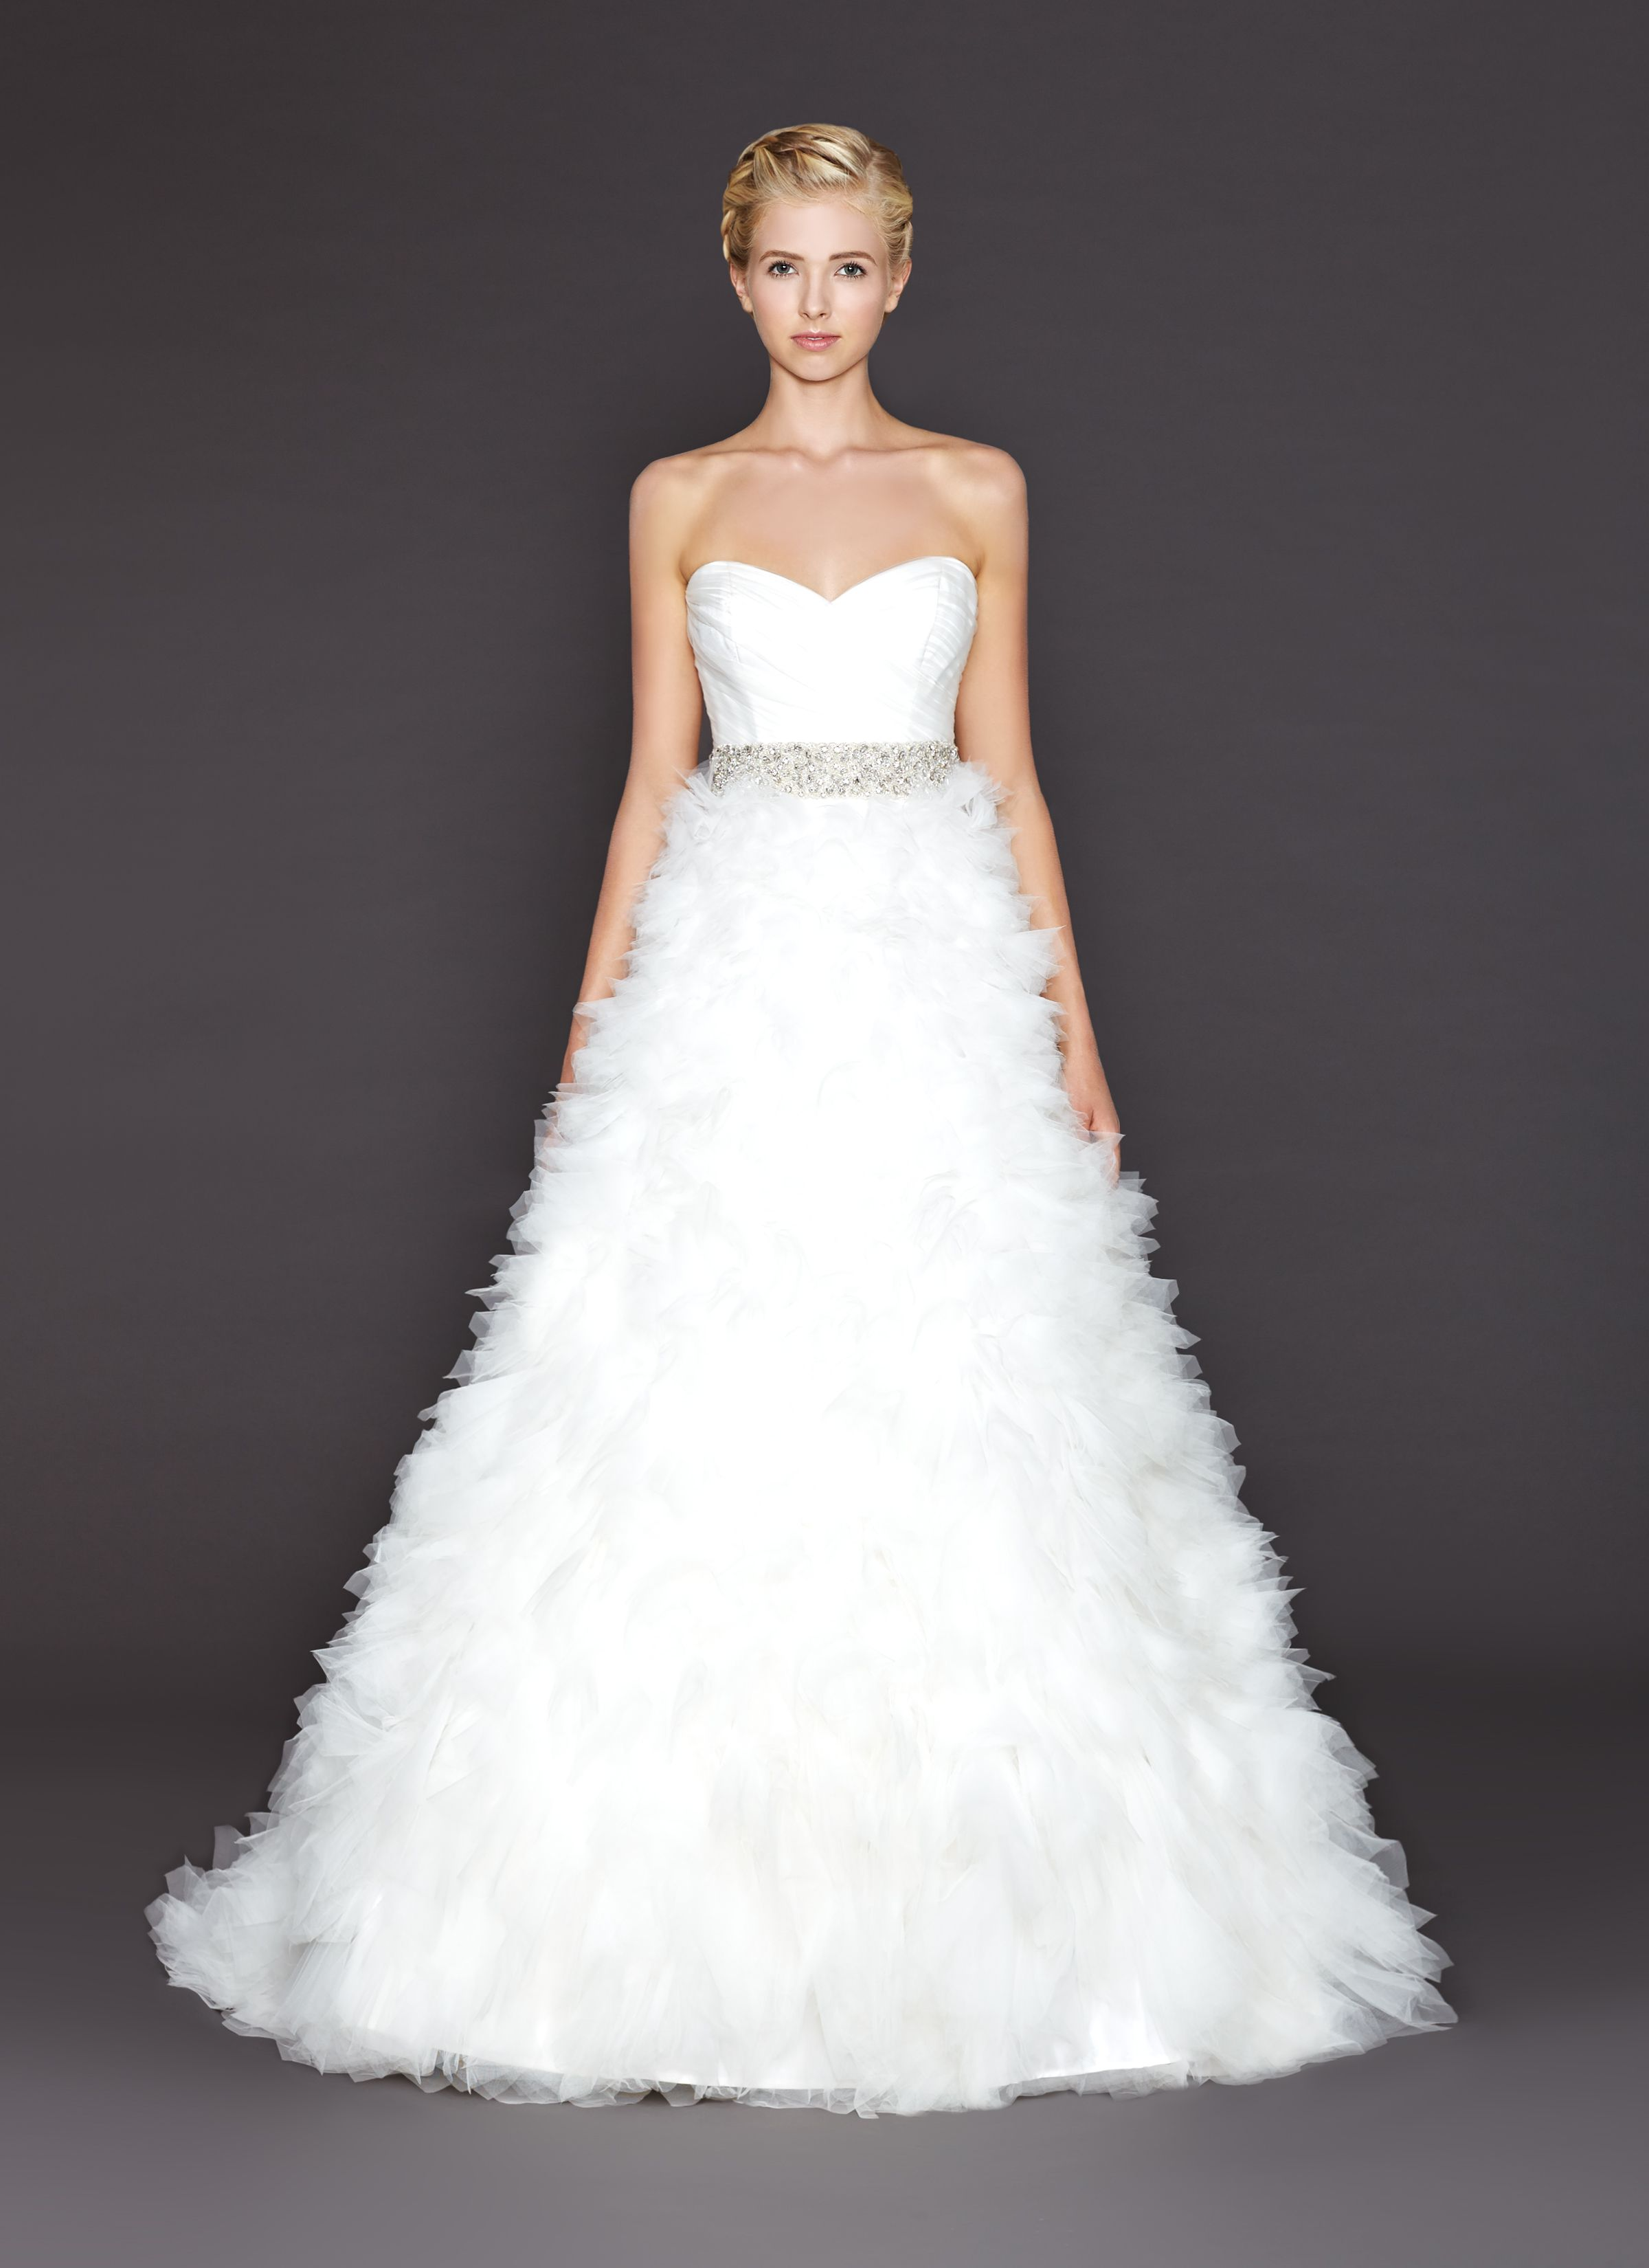 3208 - Ariana - Ball gown with layered organza skirt rushed bodice and Swarovski beaded belt at natural waistline.